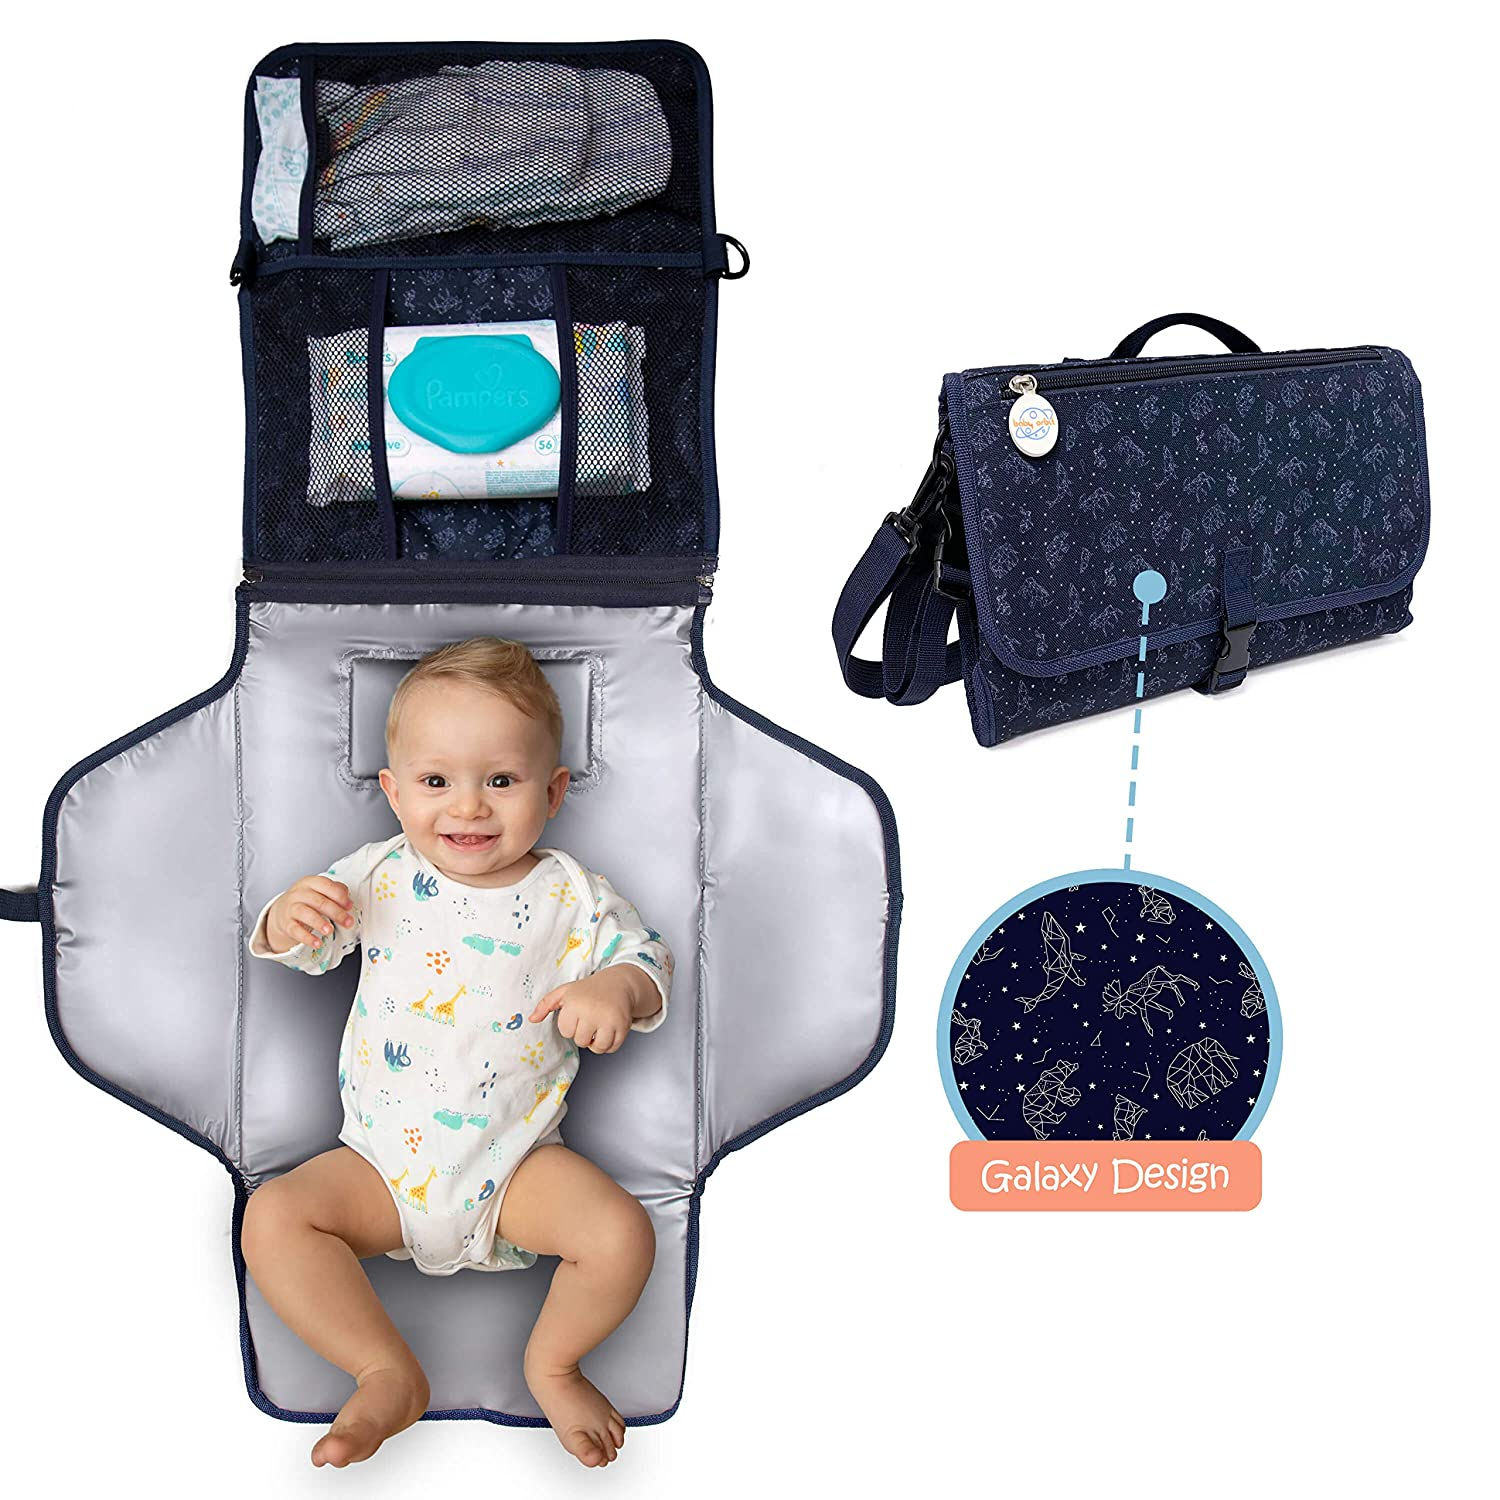 BabyOrbit Portable Diaper Changing Pad – Compact Waterproof Changing Mat – Blue Baby Changing Pad with Memory Foam Pillow for Comfort – Zipper Pockets for Diapers, Wipes and Lotion